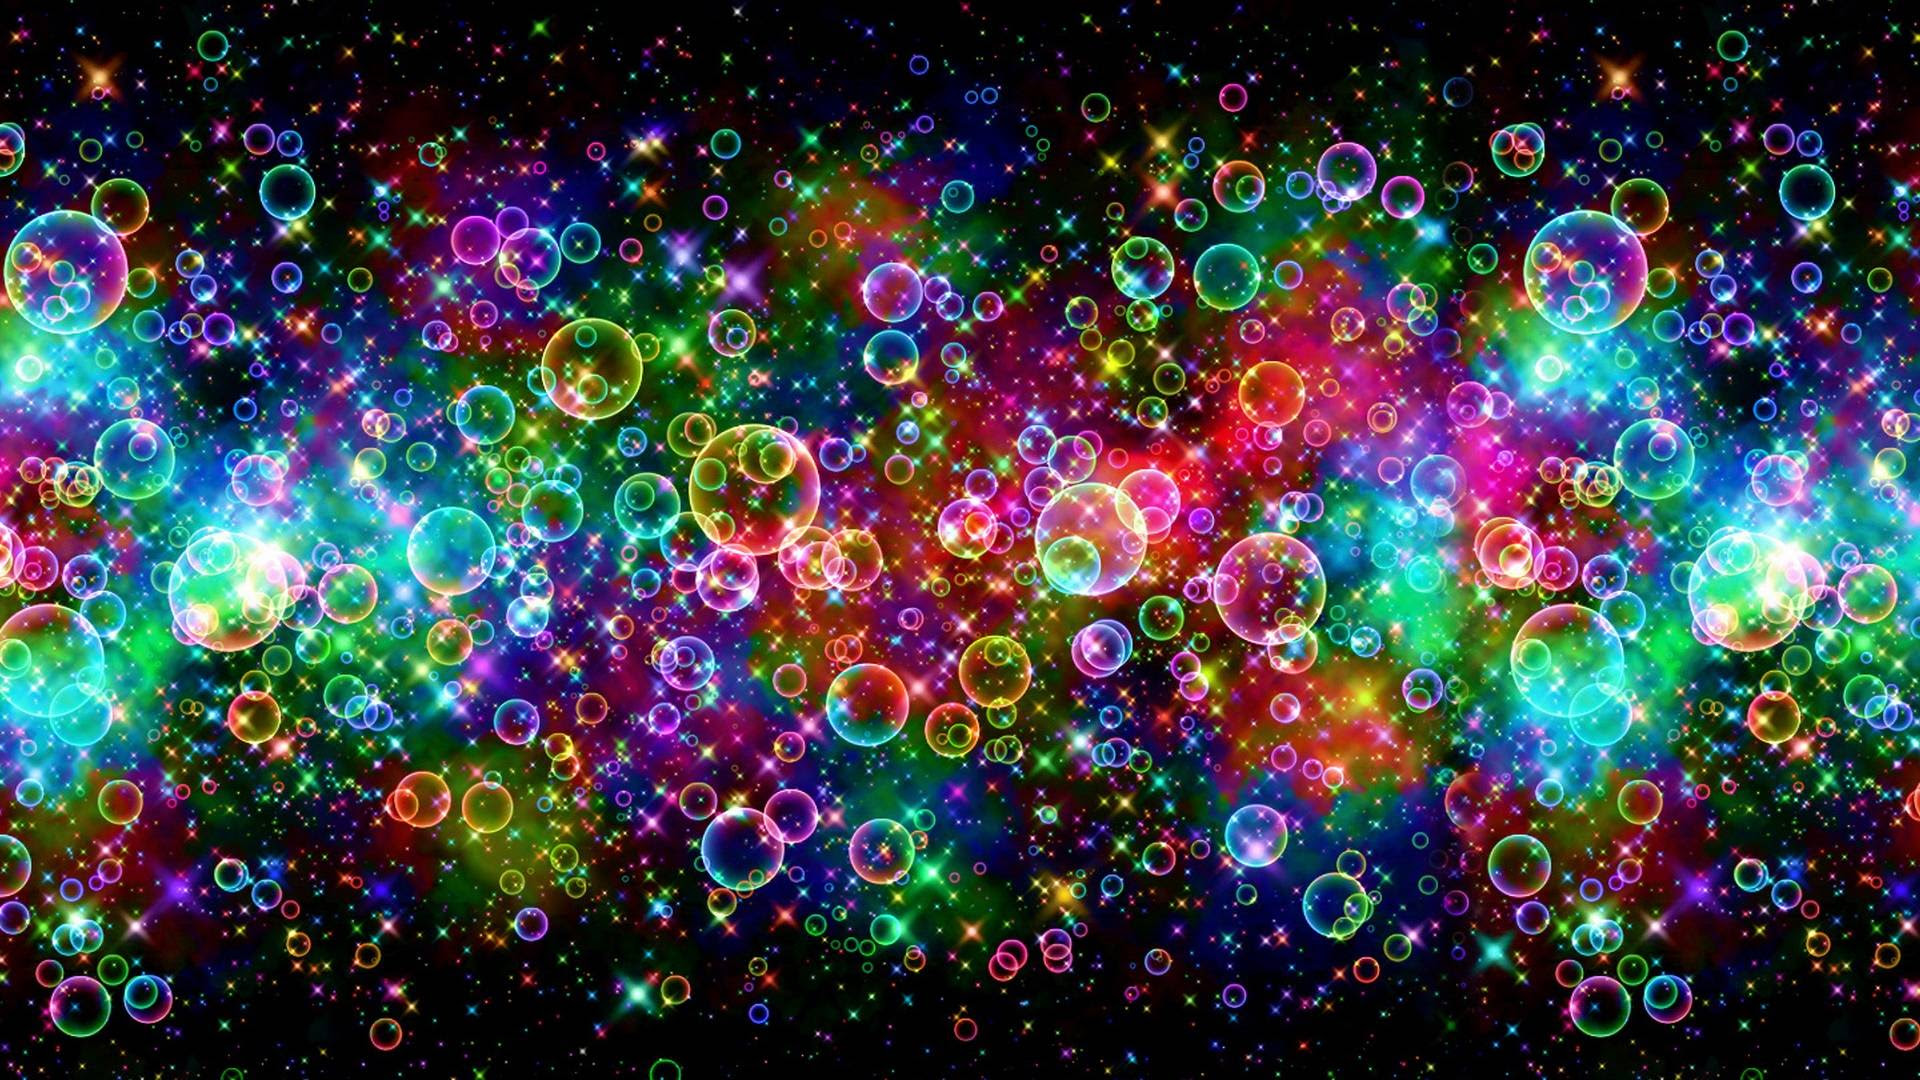 Colourful Backgrounds, Colored 3d Background, #26793